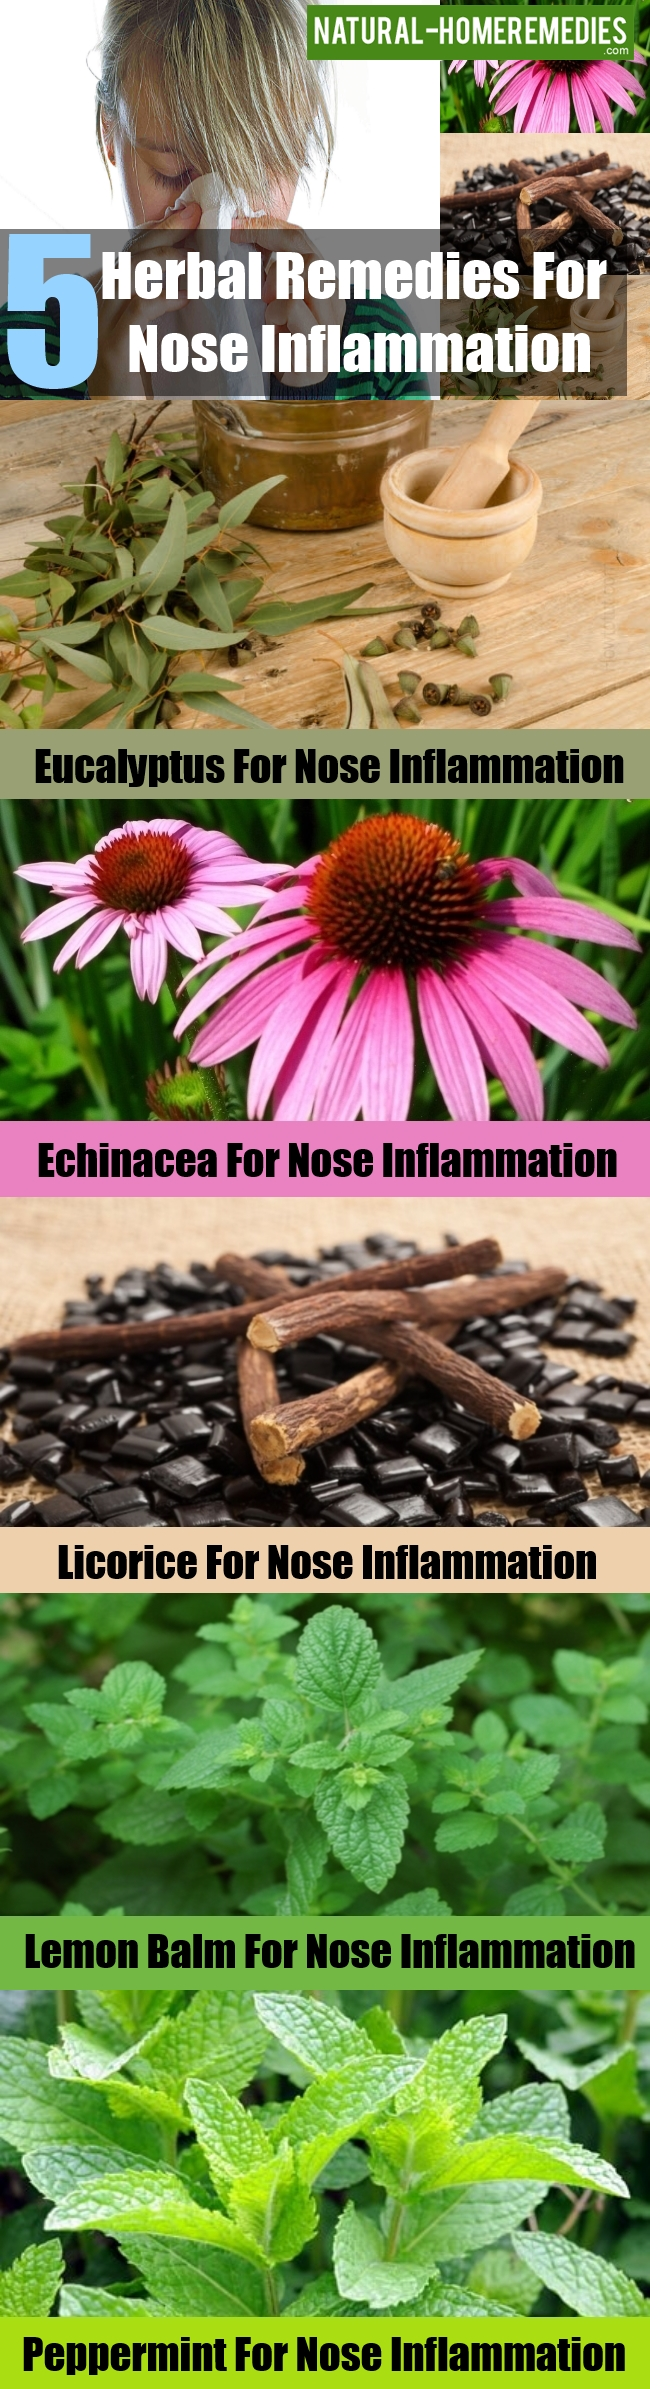 Herbal Remedies For Nose Inflammation